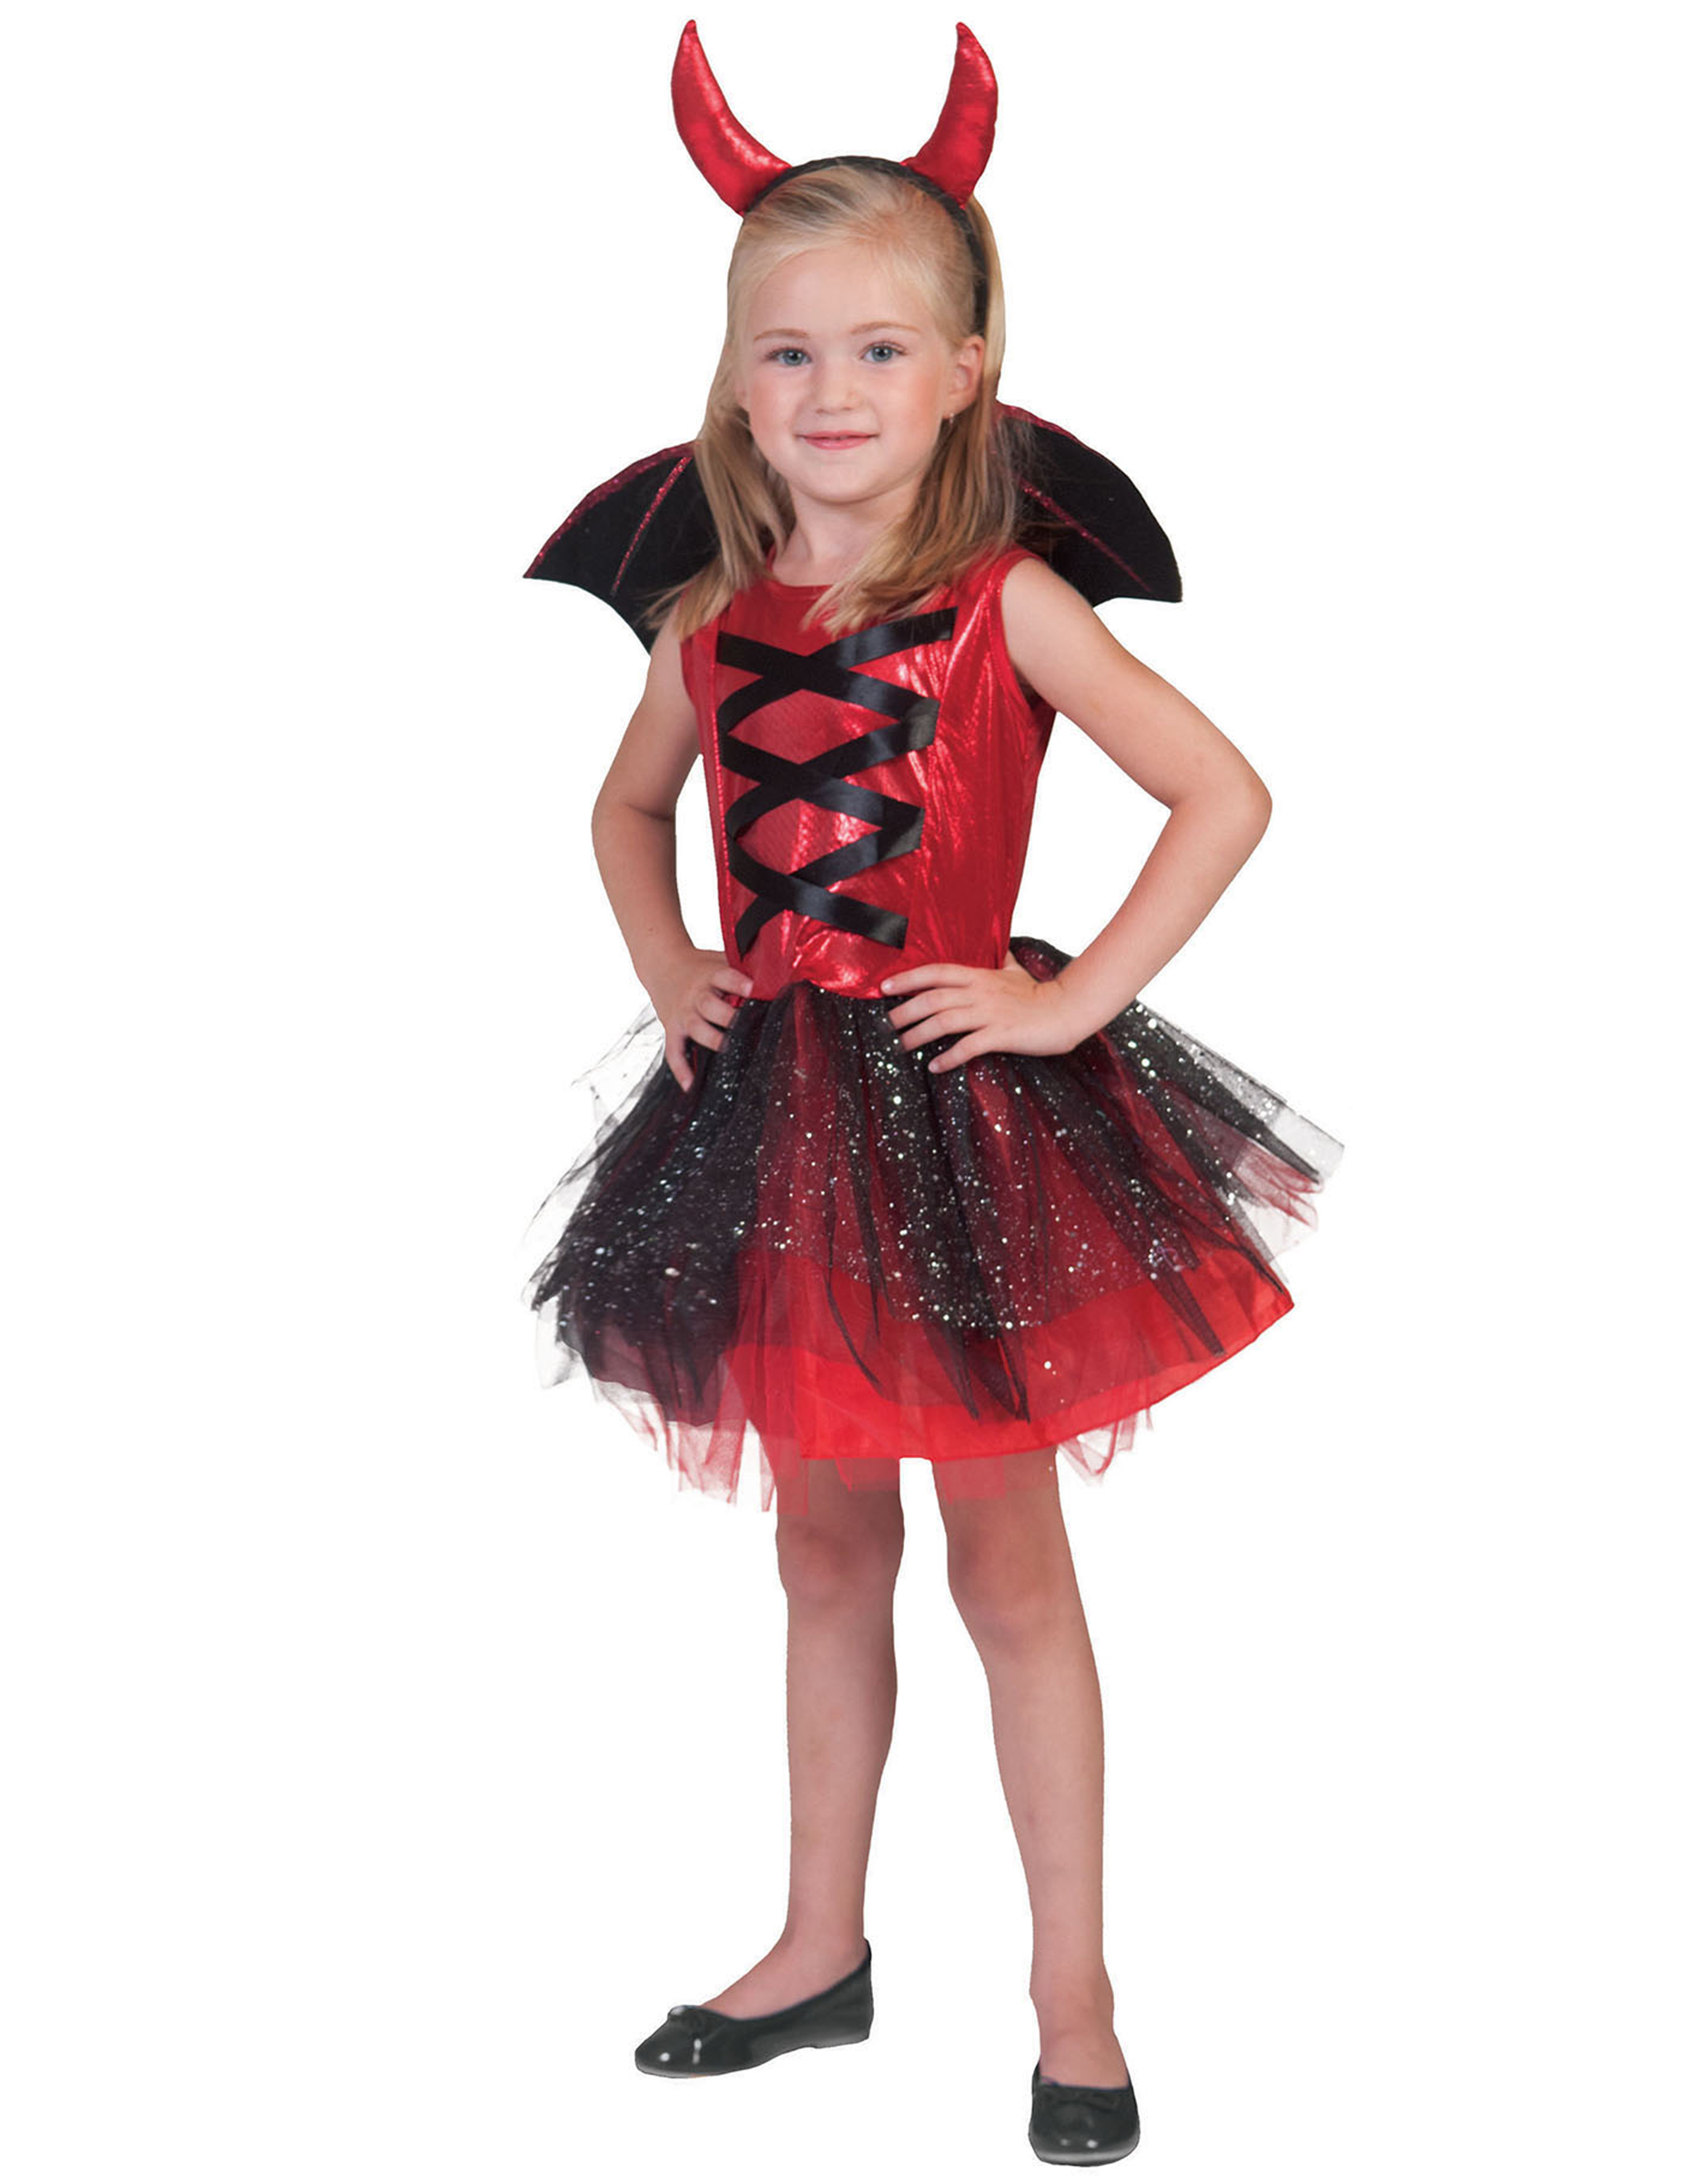 d guisement diablesse tutu avec ailes fille halloween. Black Bedroom Furniture Sets. Home Design Ideas